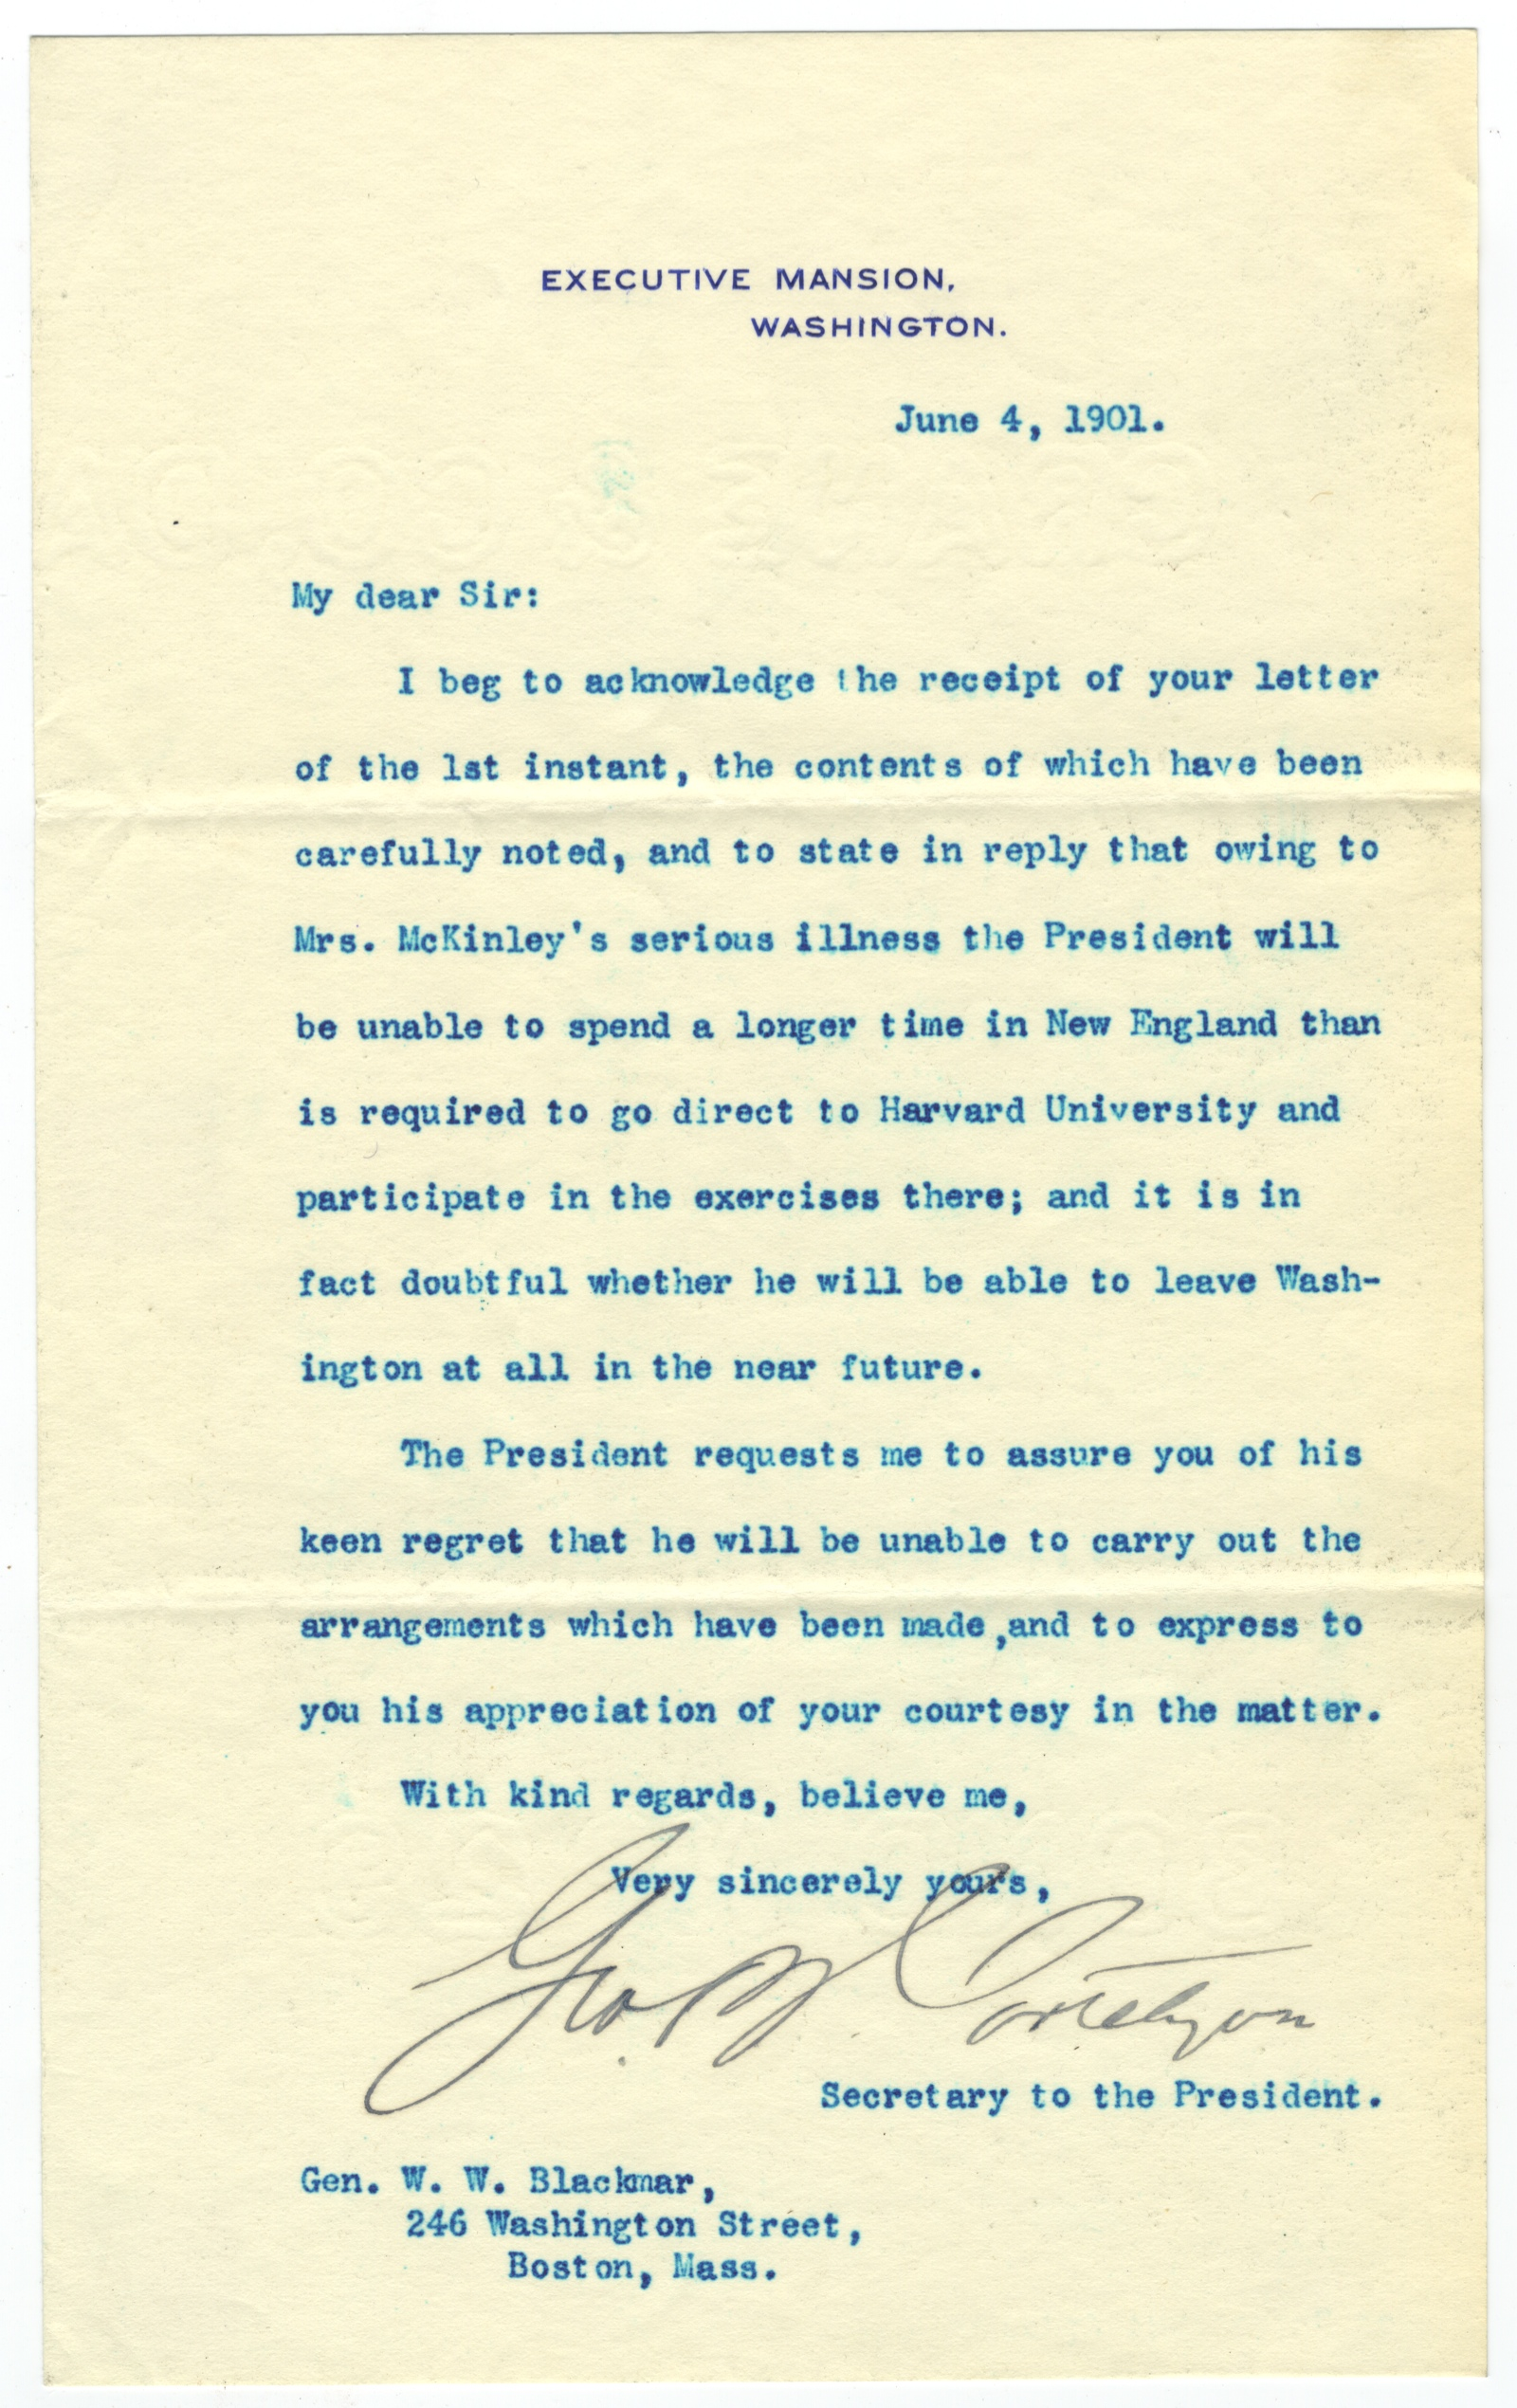 """President McKinley's Secretary Cancels McKinley's Engagements """"Owing to Mrs. McKinley's Serious Illness"""""""